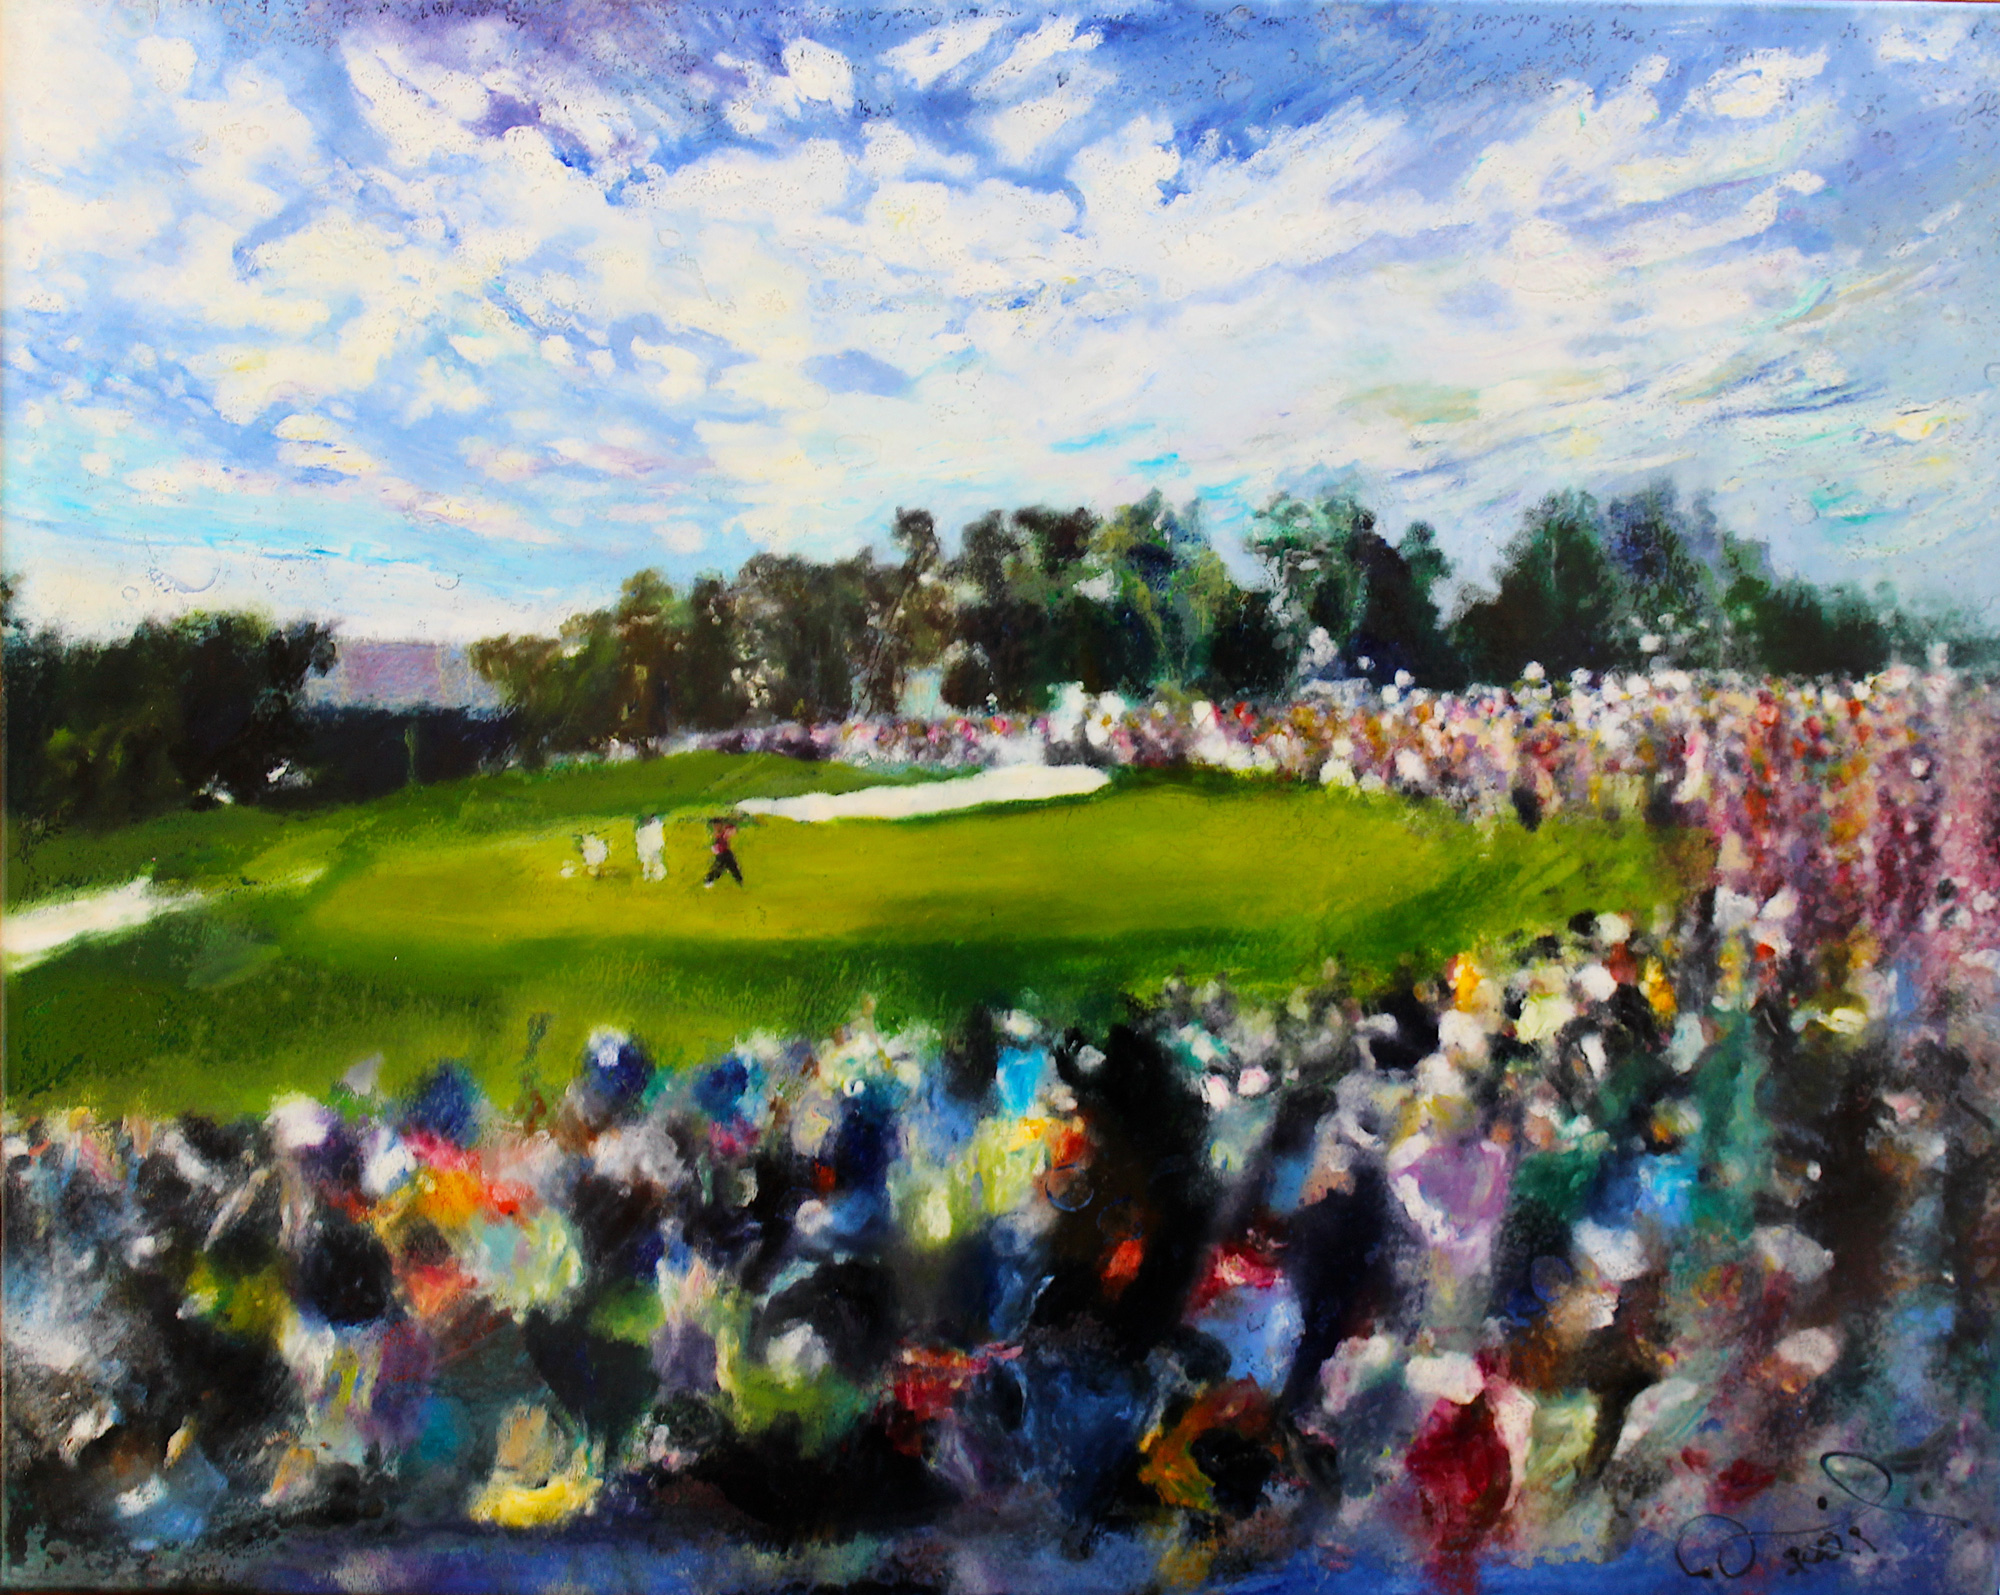 Masters 2019, Tiger Woods Final Hole